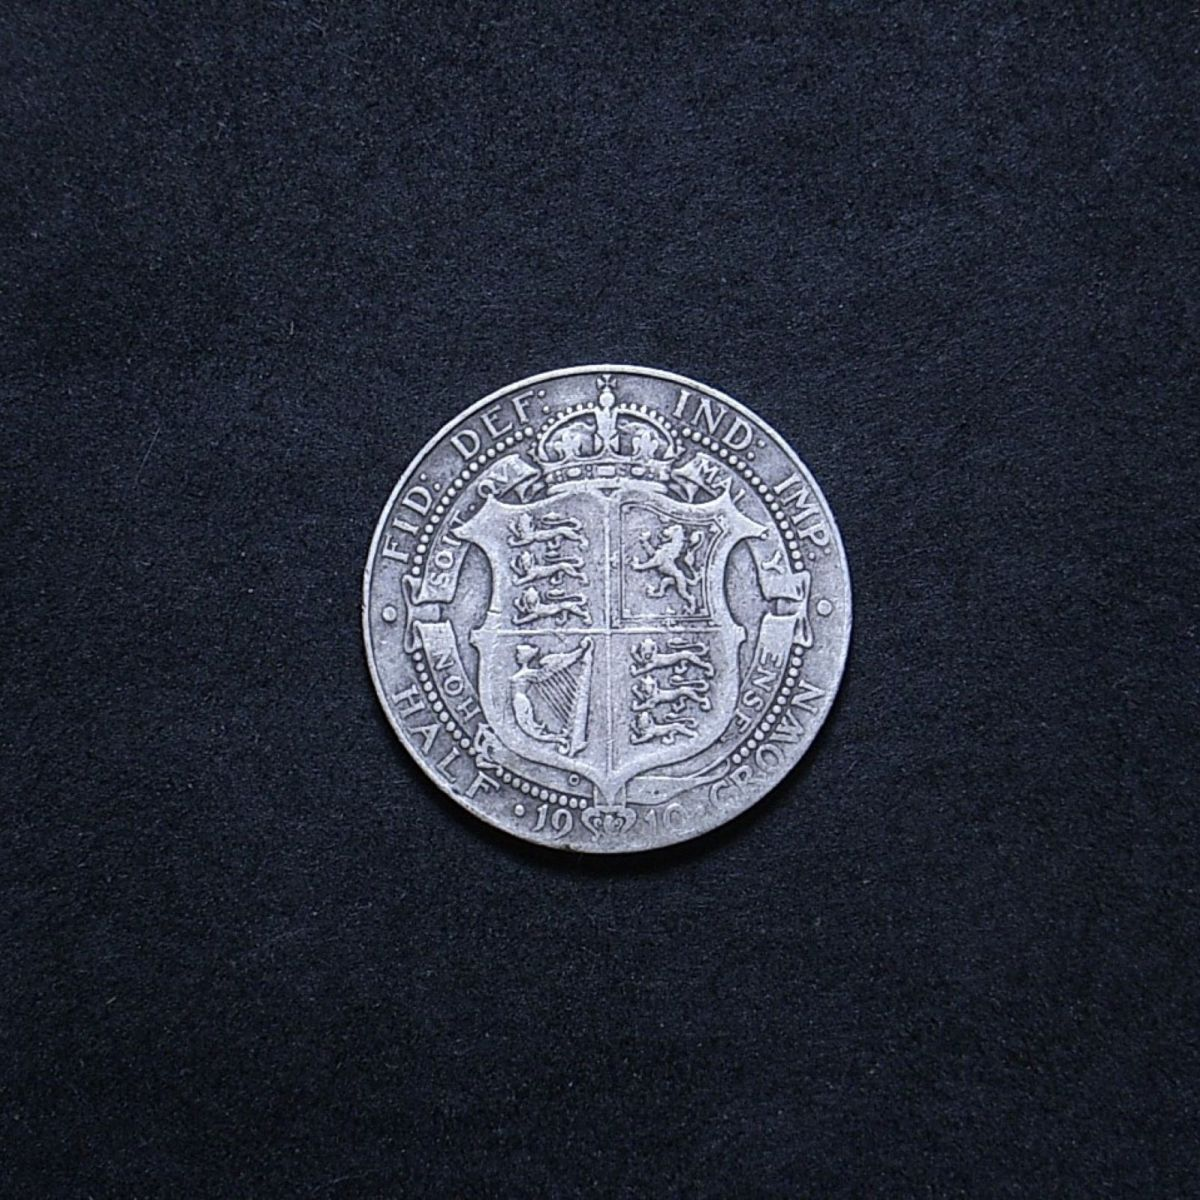 UK Half Crown 1910 reverse showing overall appearance